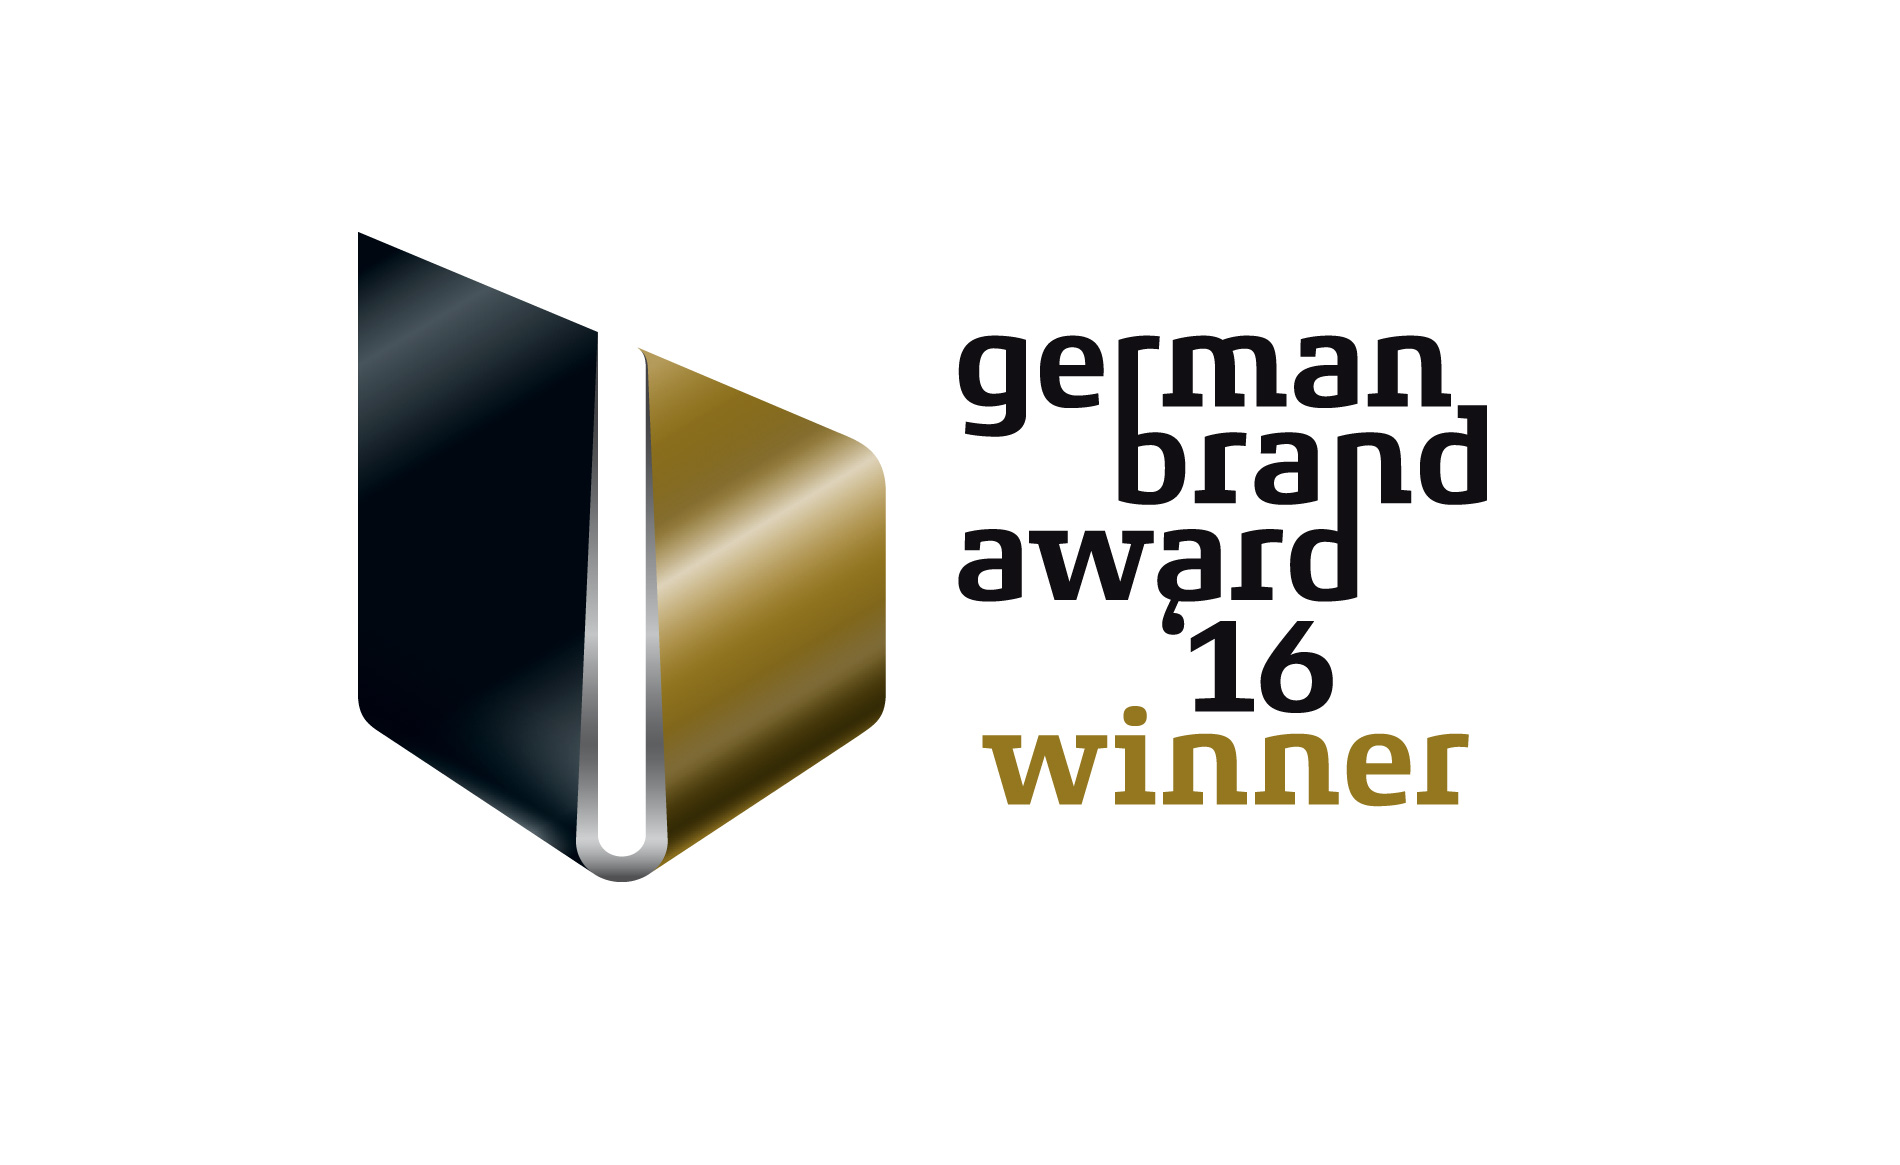 Excellent Brand: LED Linear™ wins at German Brand Award 2016 News ...